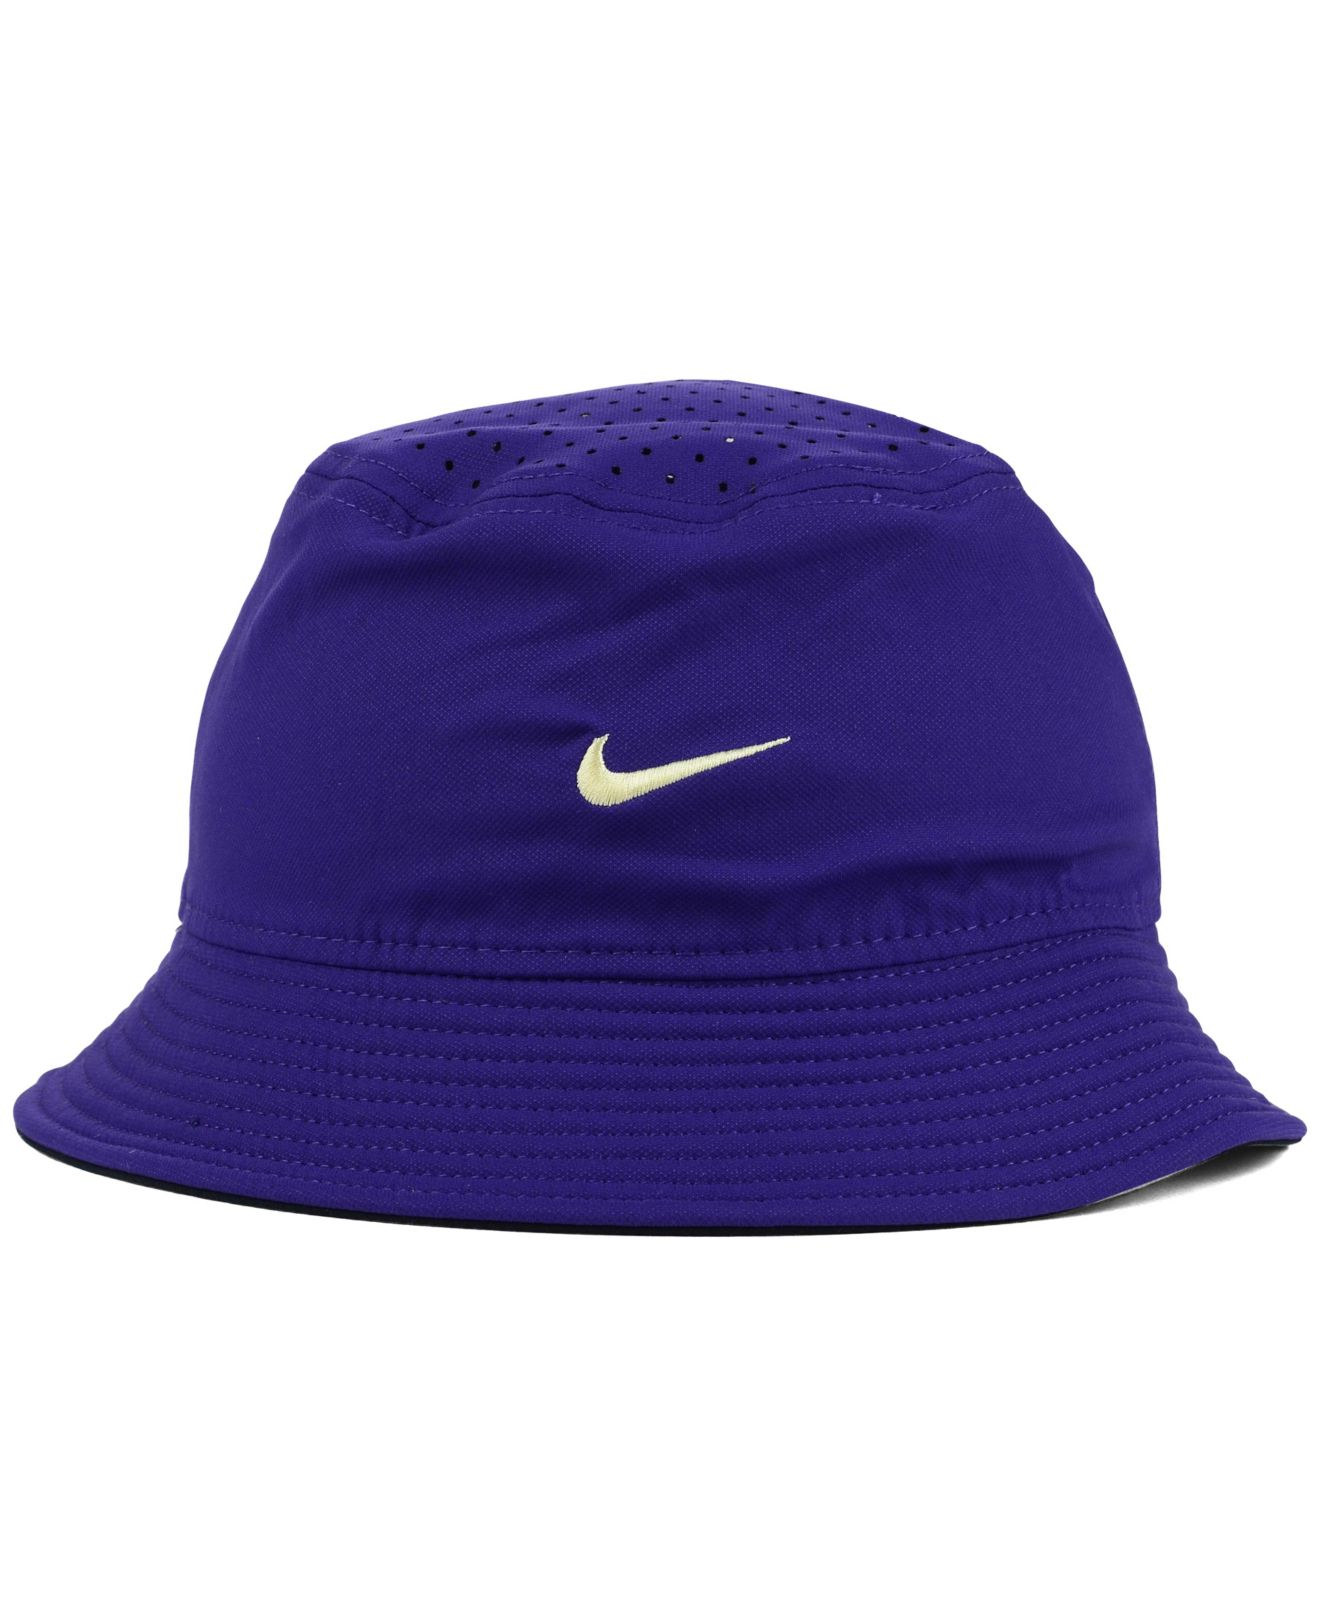 ... usa lyst nike washington huskies vapor bucket hat in purple for men  3a00e c12c1 b1516f85a67f